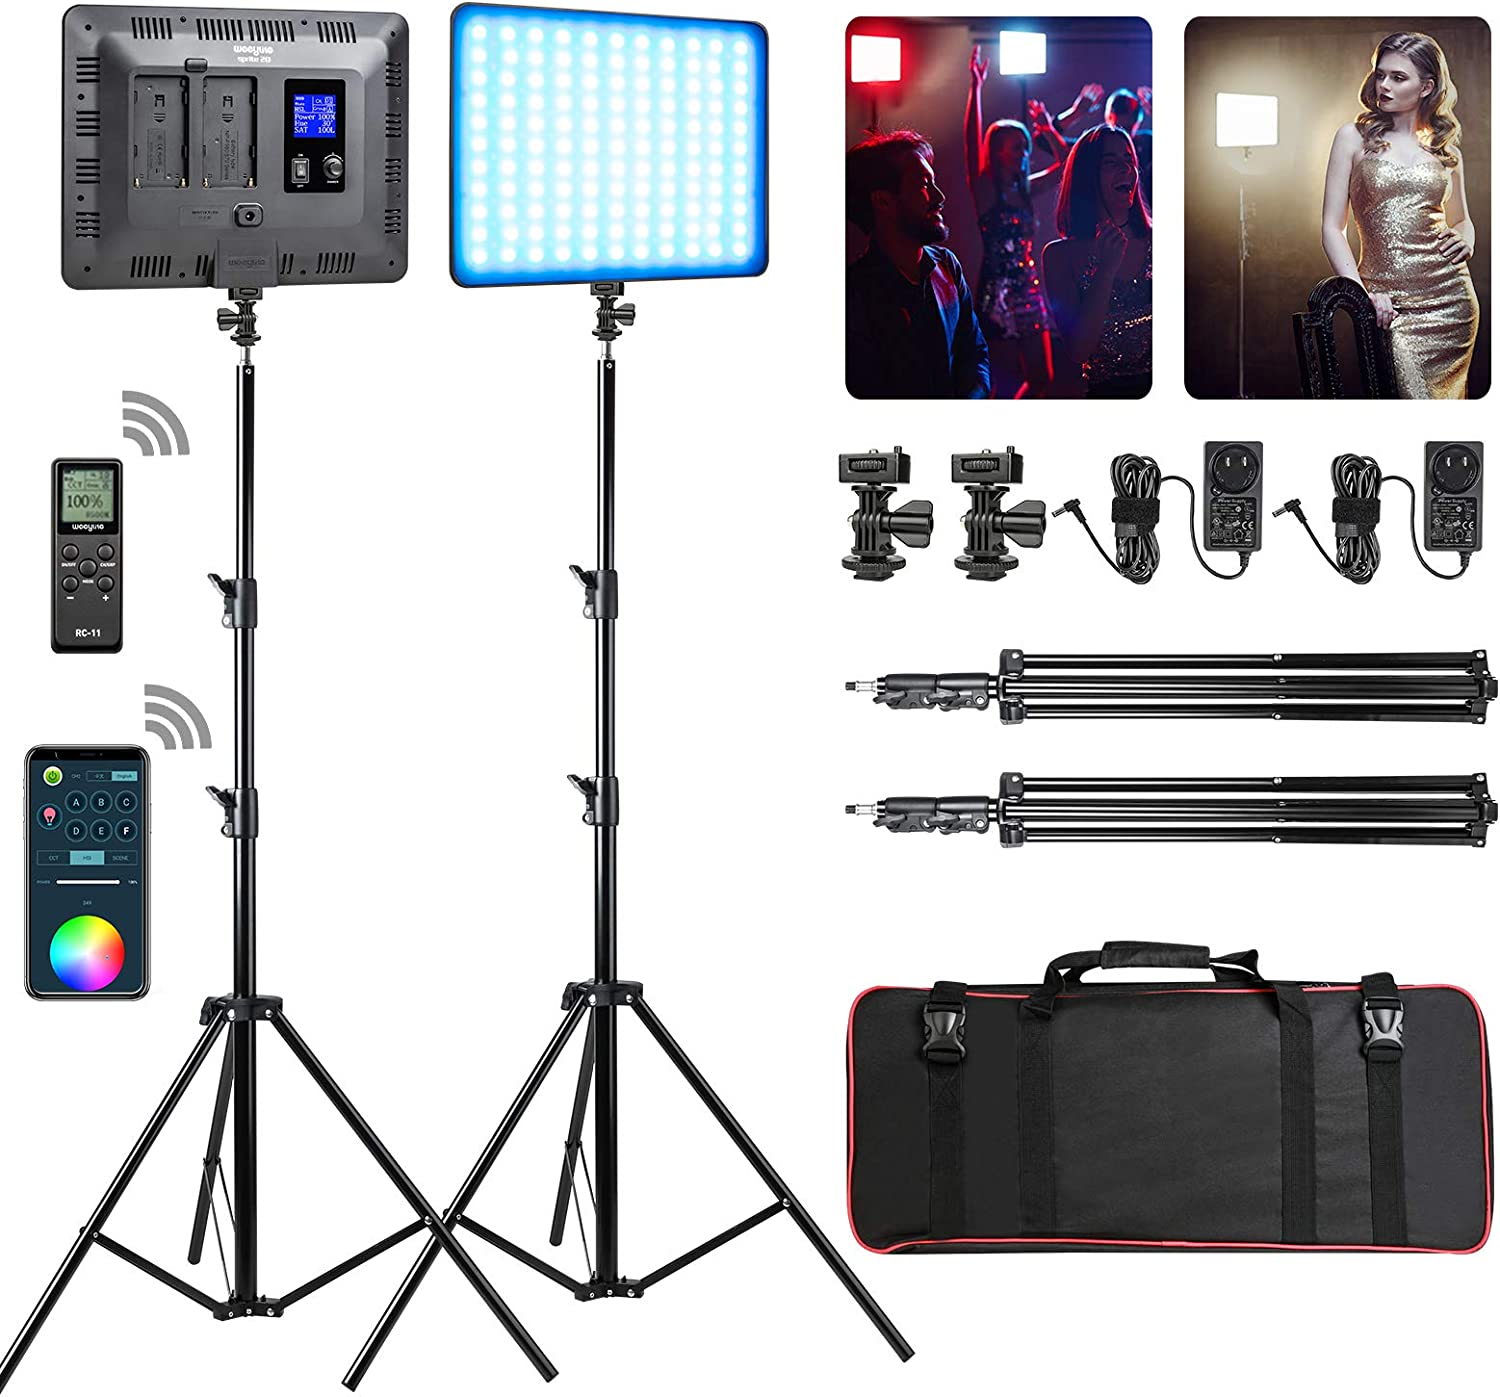 RGB LED Video Light, Photography Video Lighting kit with APP/Remote Control, 2 Packs Led Panel Light with Stand for Video Recording YouTube Studio CRI 95/ 2500K-8500K/ RGB Colors/ 17 Scenes